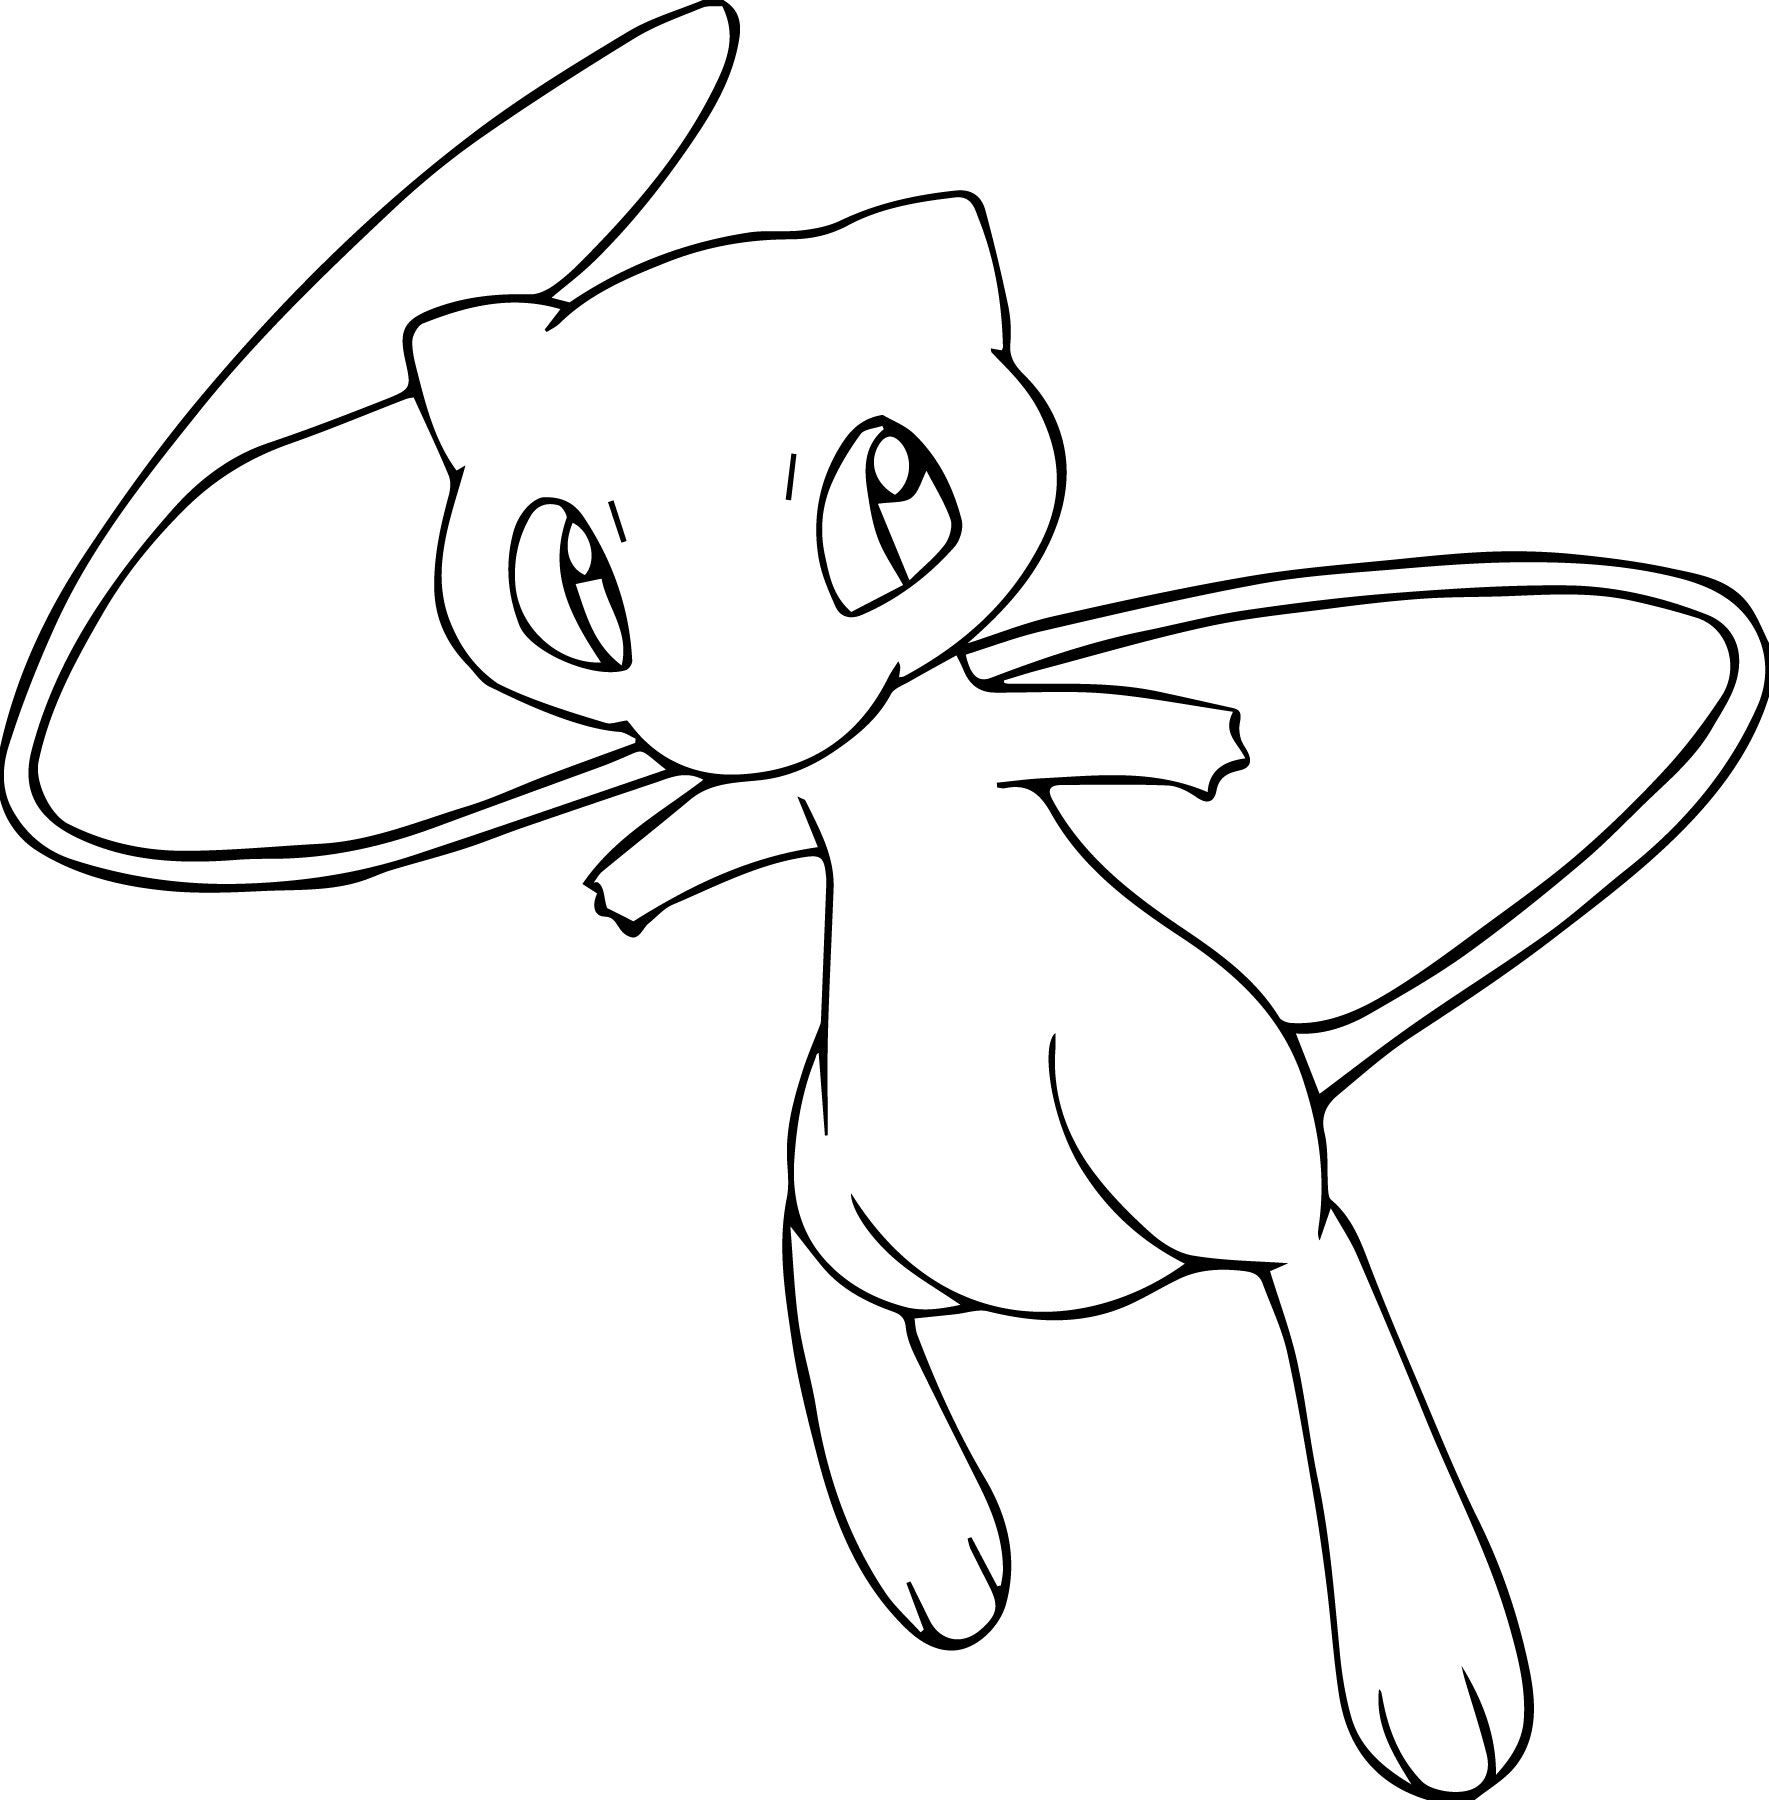 Mew Coloring Page With Images Pokemon Coloring Pages Pokemon